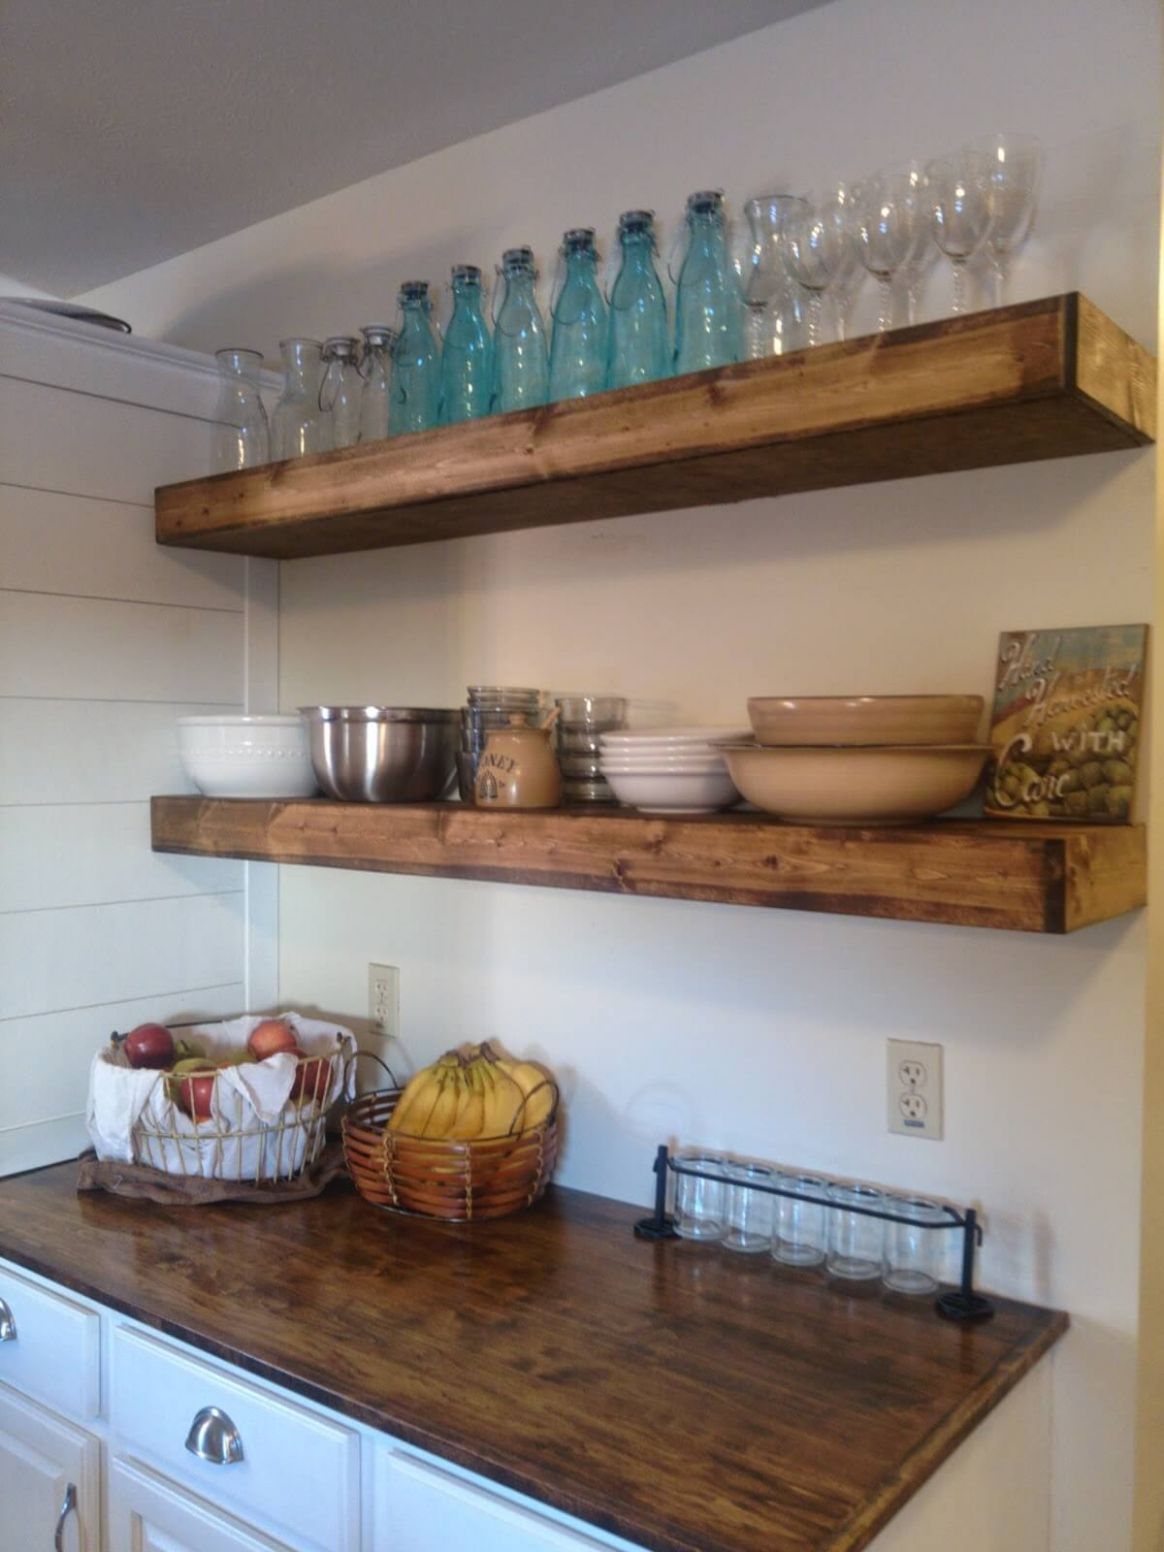 9+ Best DIY Floating Shelf Ideas and Designs for 9 - wall shelves decorating ideas kitchen